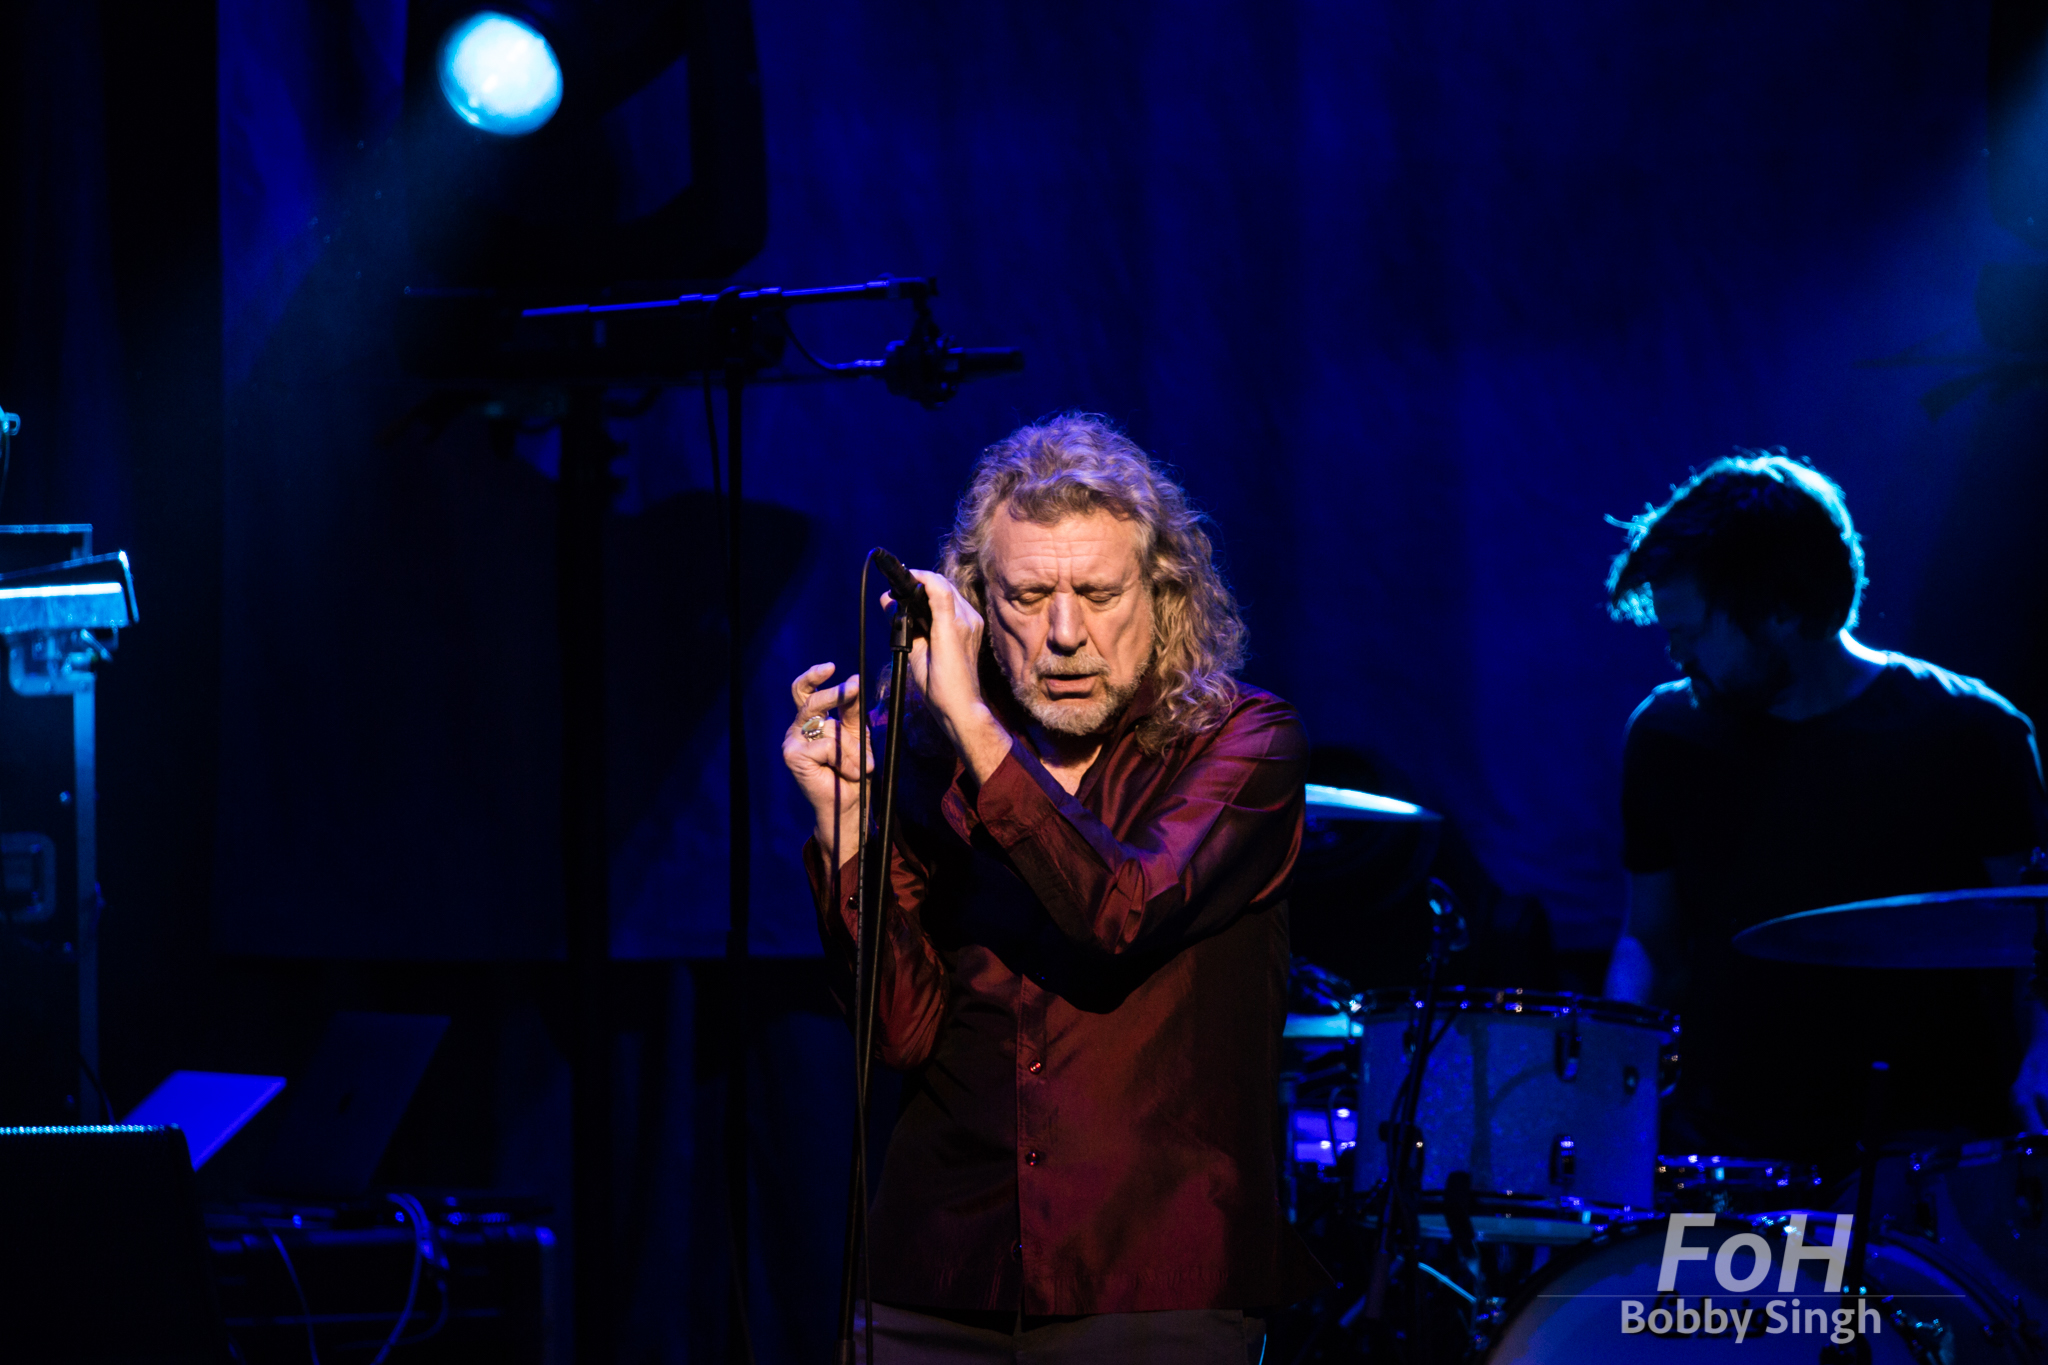 Robert Plant performing at Massey Hall in Toronto. Credit Bobby Singh/Alamy